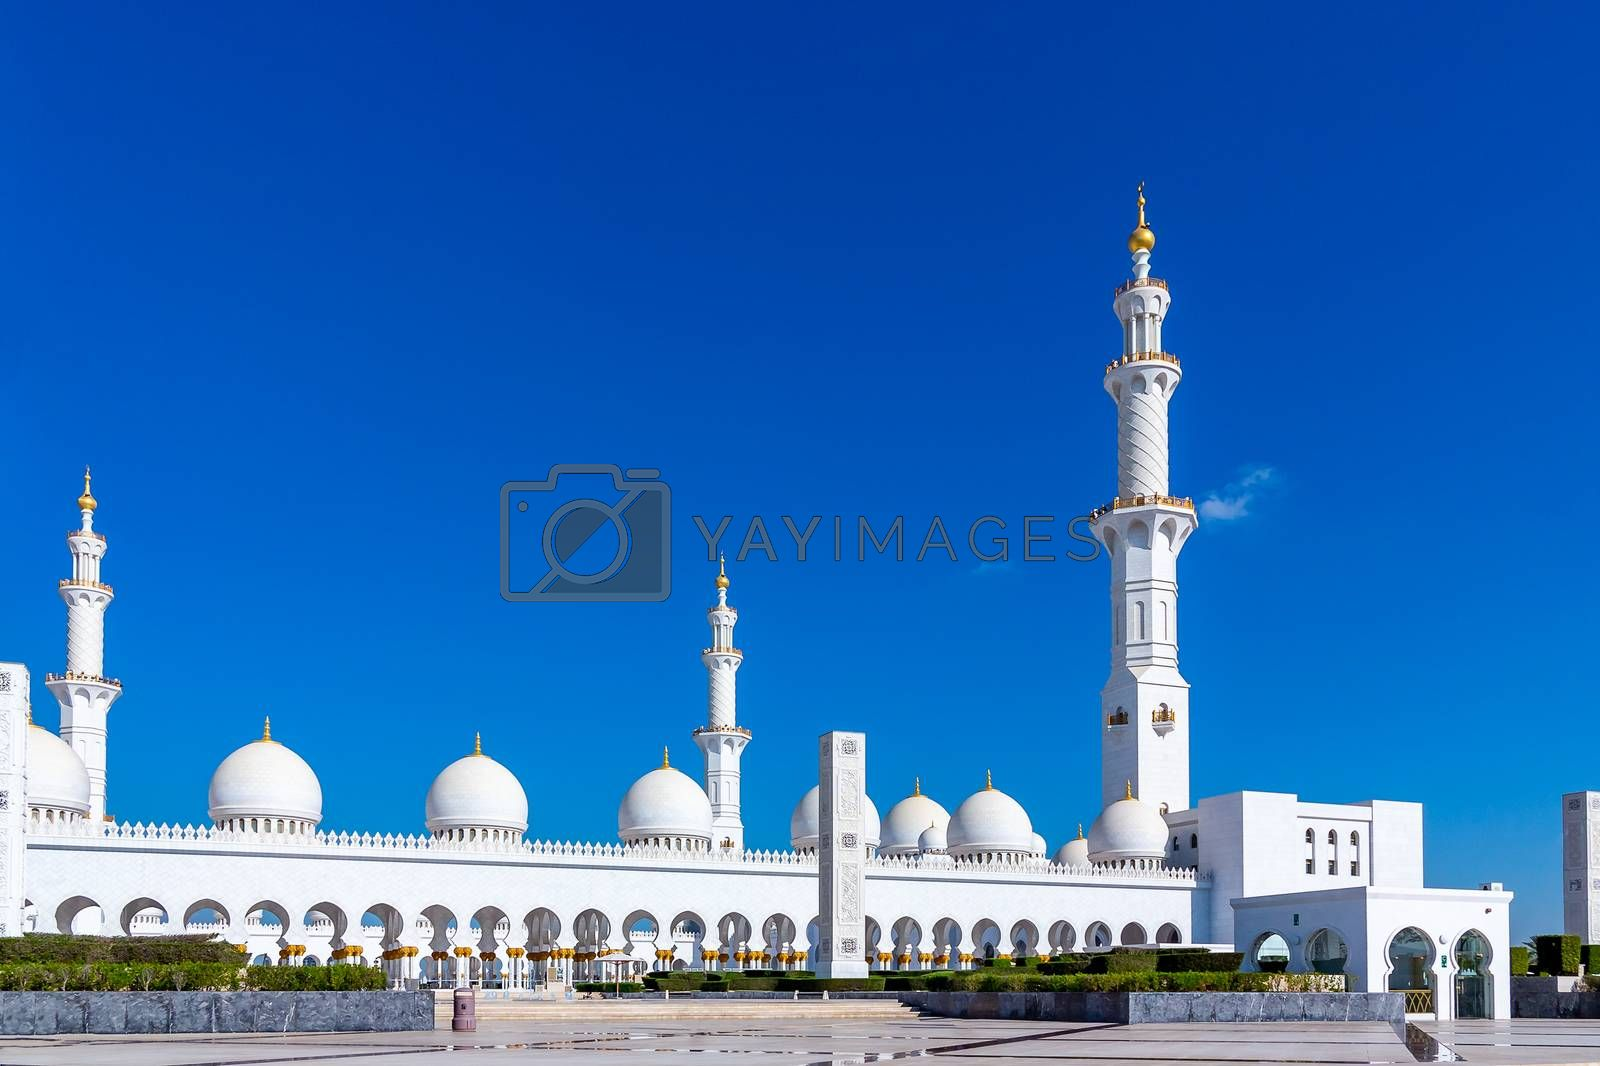 Famous Sheikh Zayed grand mosque in Abu Dhabi, United Arab Emirates by galsand